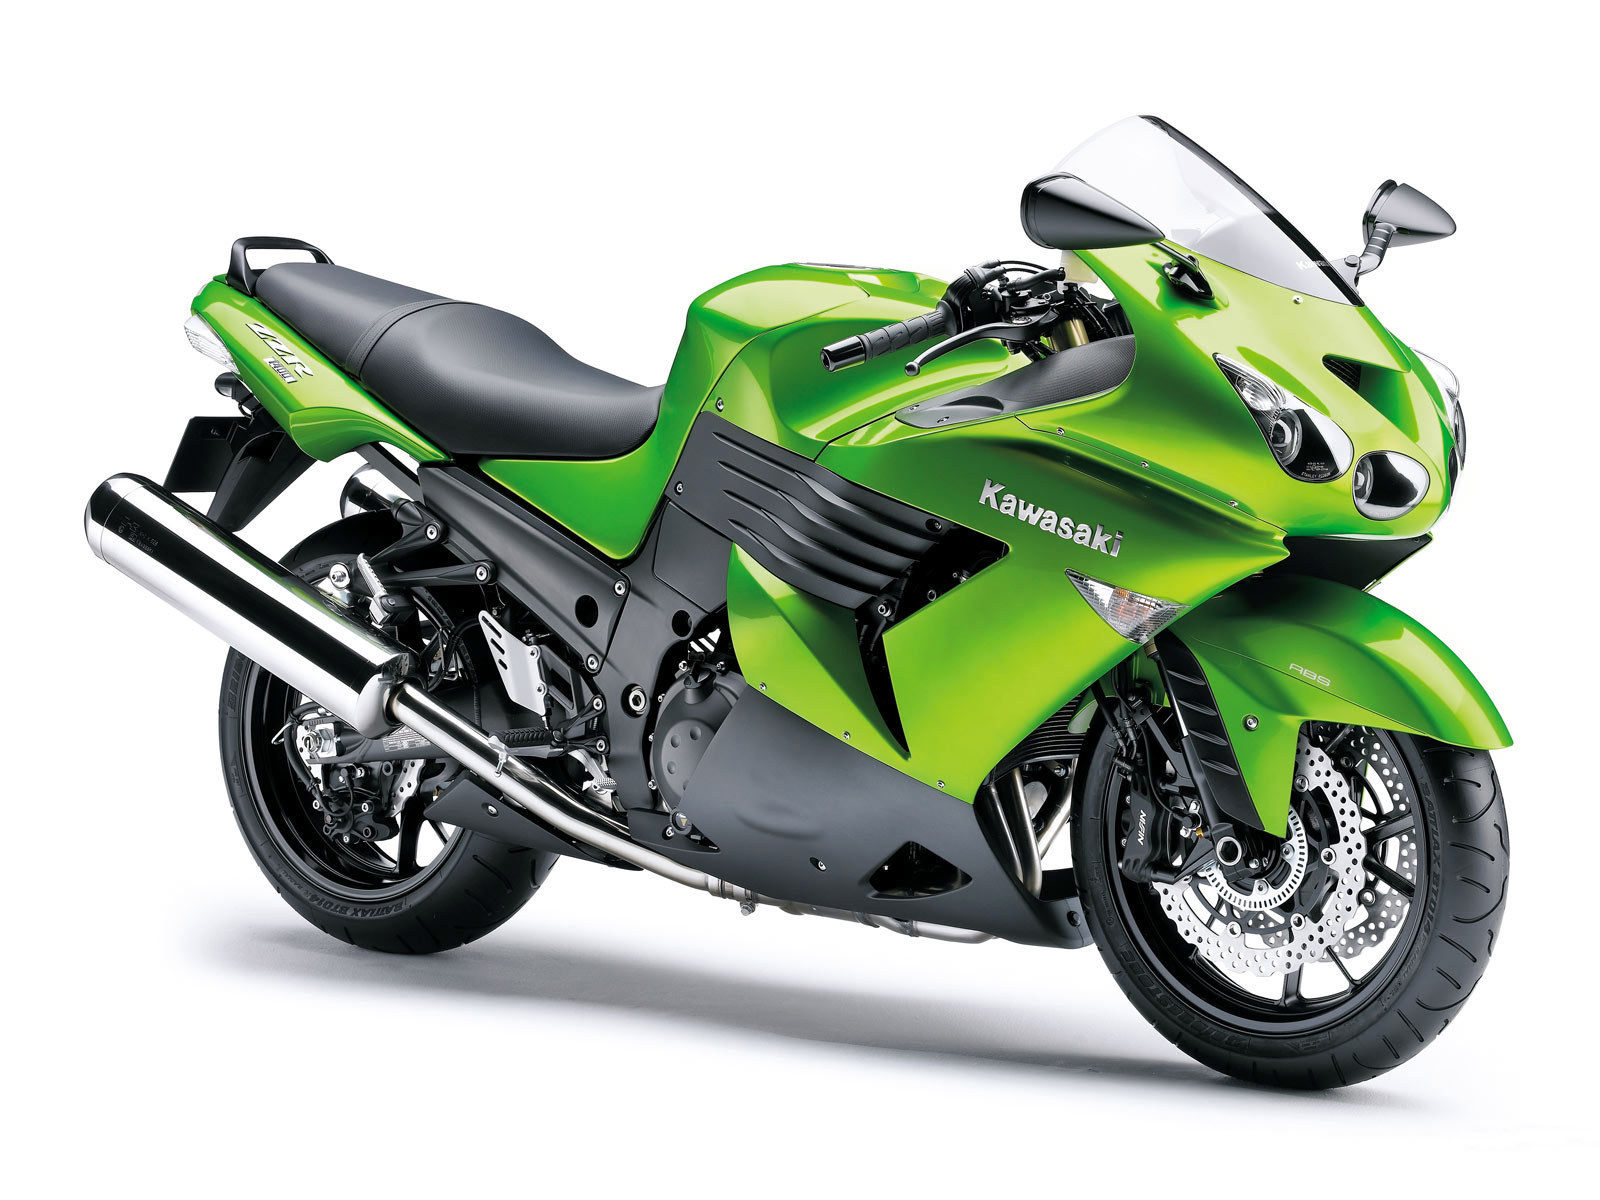 Kawasaki Motorcycle Wallpaper Wallpapersafari